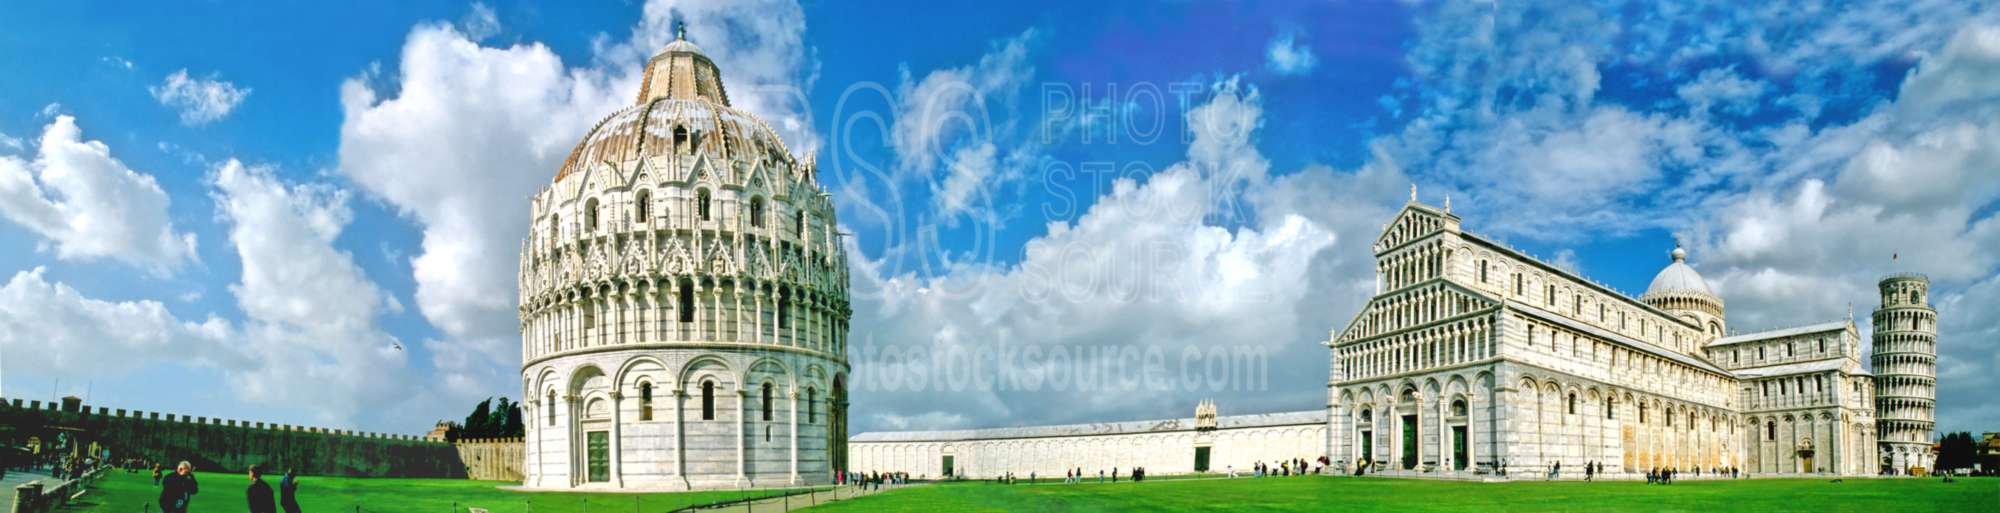 Field of Miracles,leaning tower of pisa,tower,cathedral,basilica,duomo,panorama,panoramas,churches,religion,church mosque panos